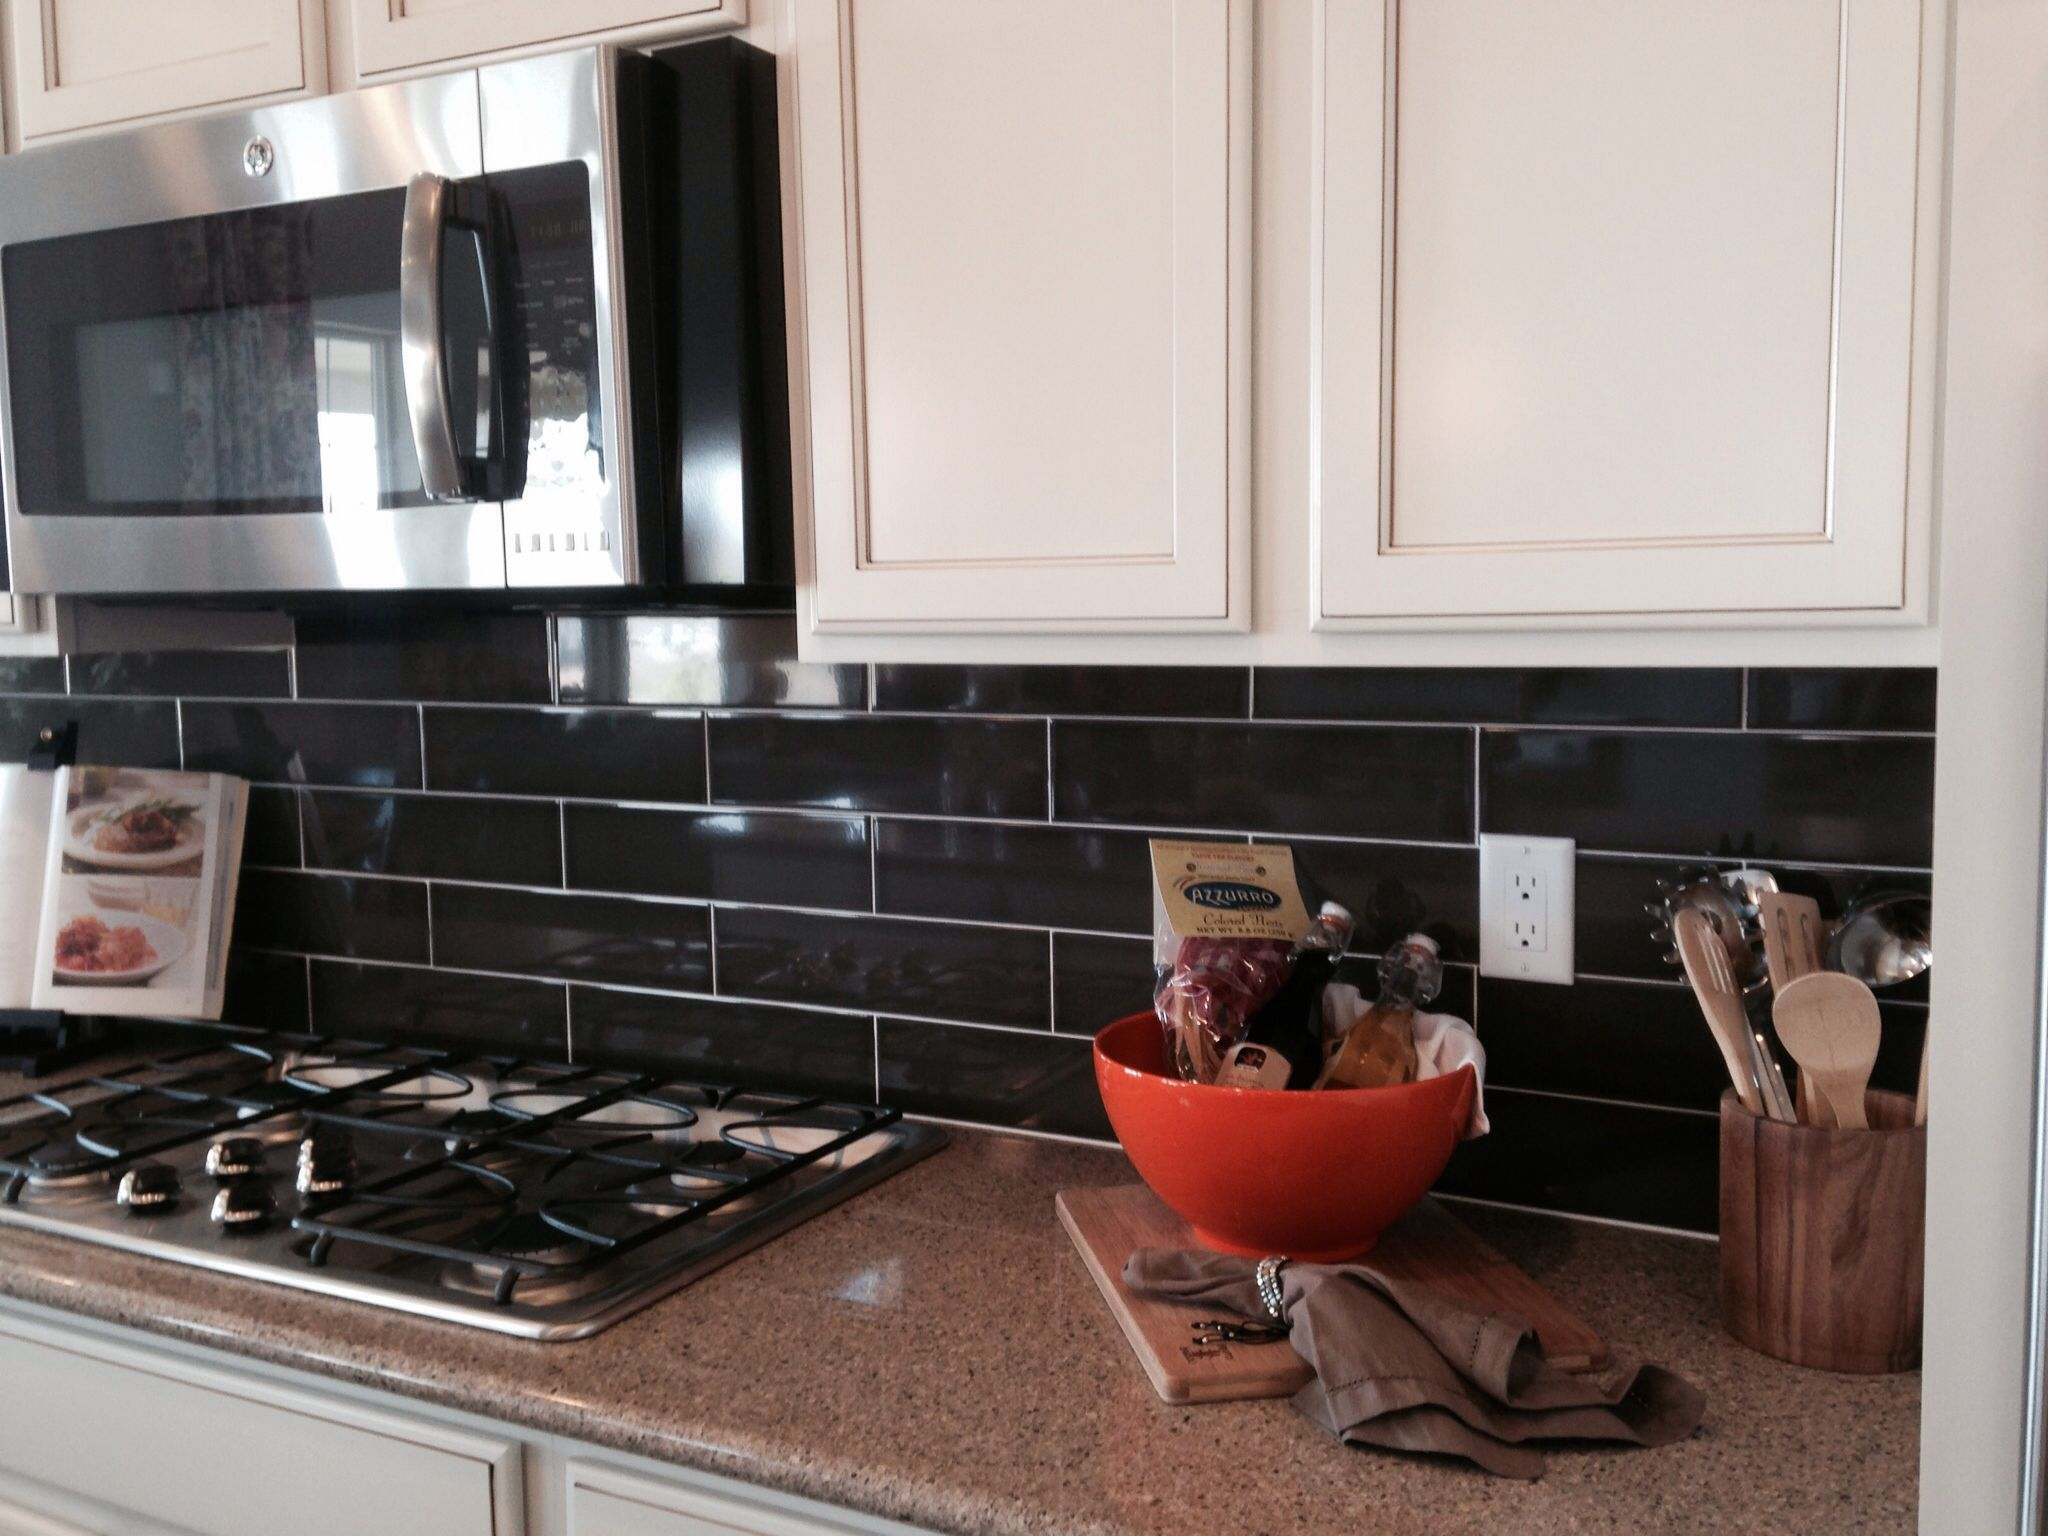 Kitchen Backsplash Cafe H Line Glass Subway Tiles In 3x6 Instead